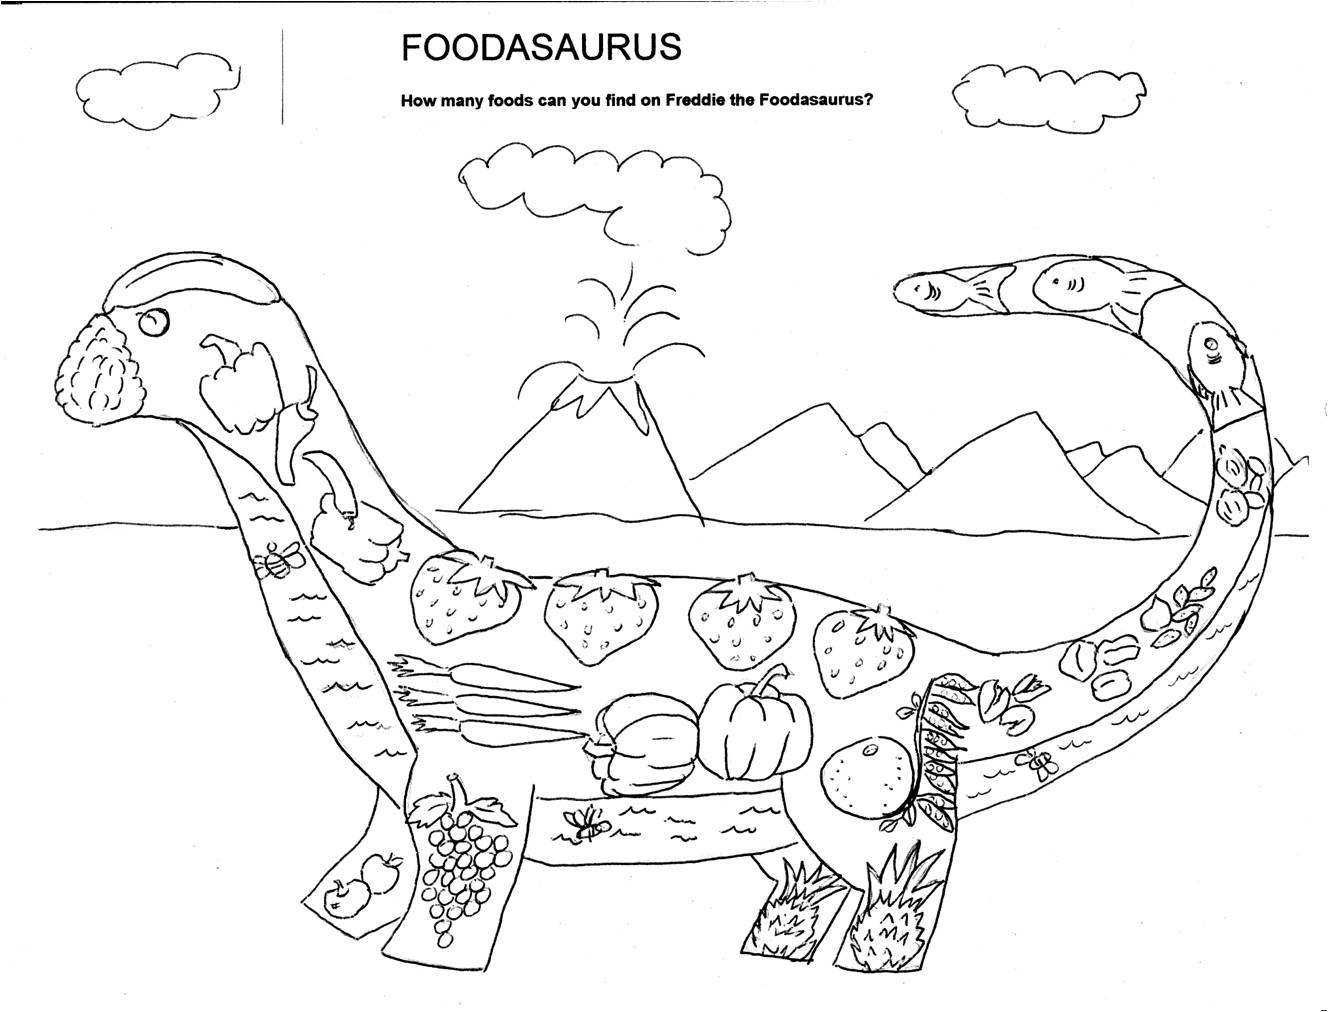 5 food groups coloring pages 12 best images of five food groups worksheets printable coloring pages food 5 groups 1 1